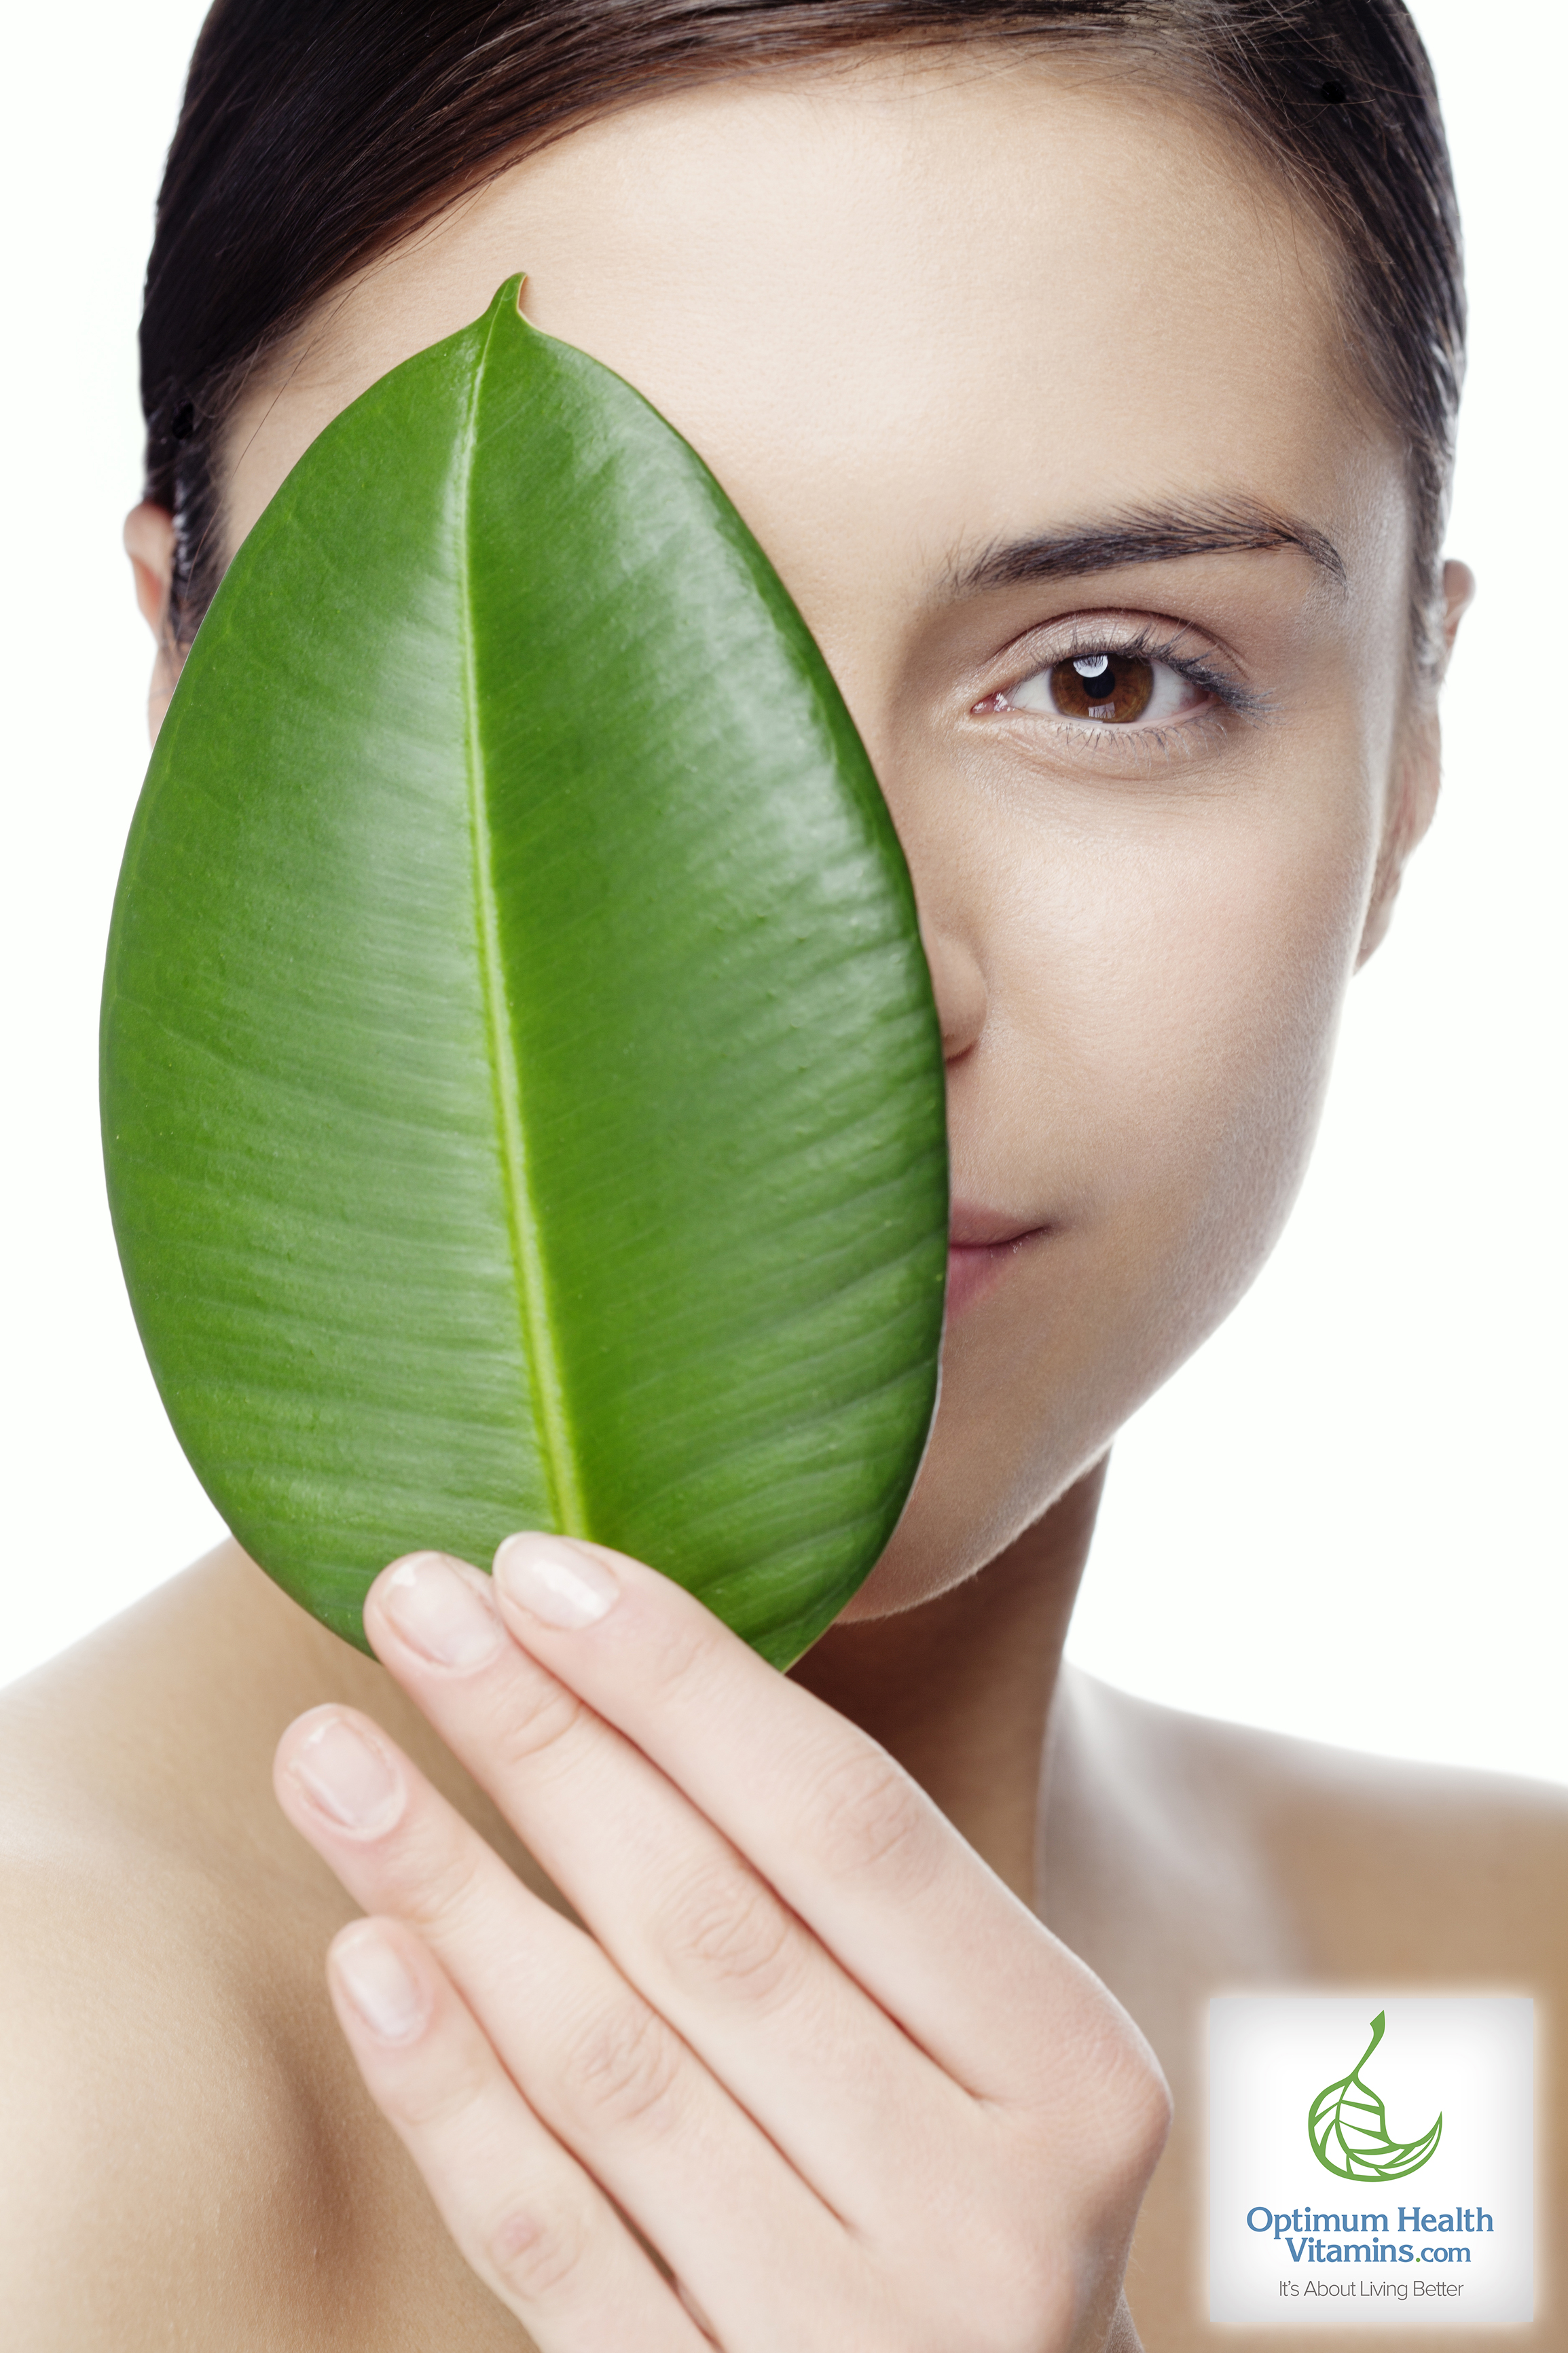 5 Top Natural Skincare Supplements